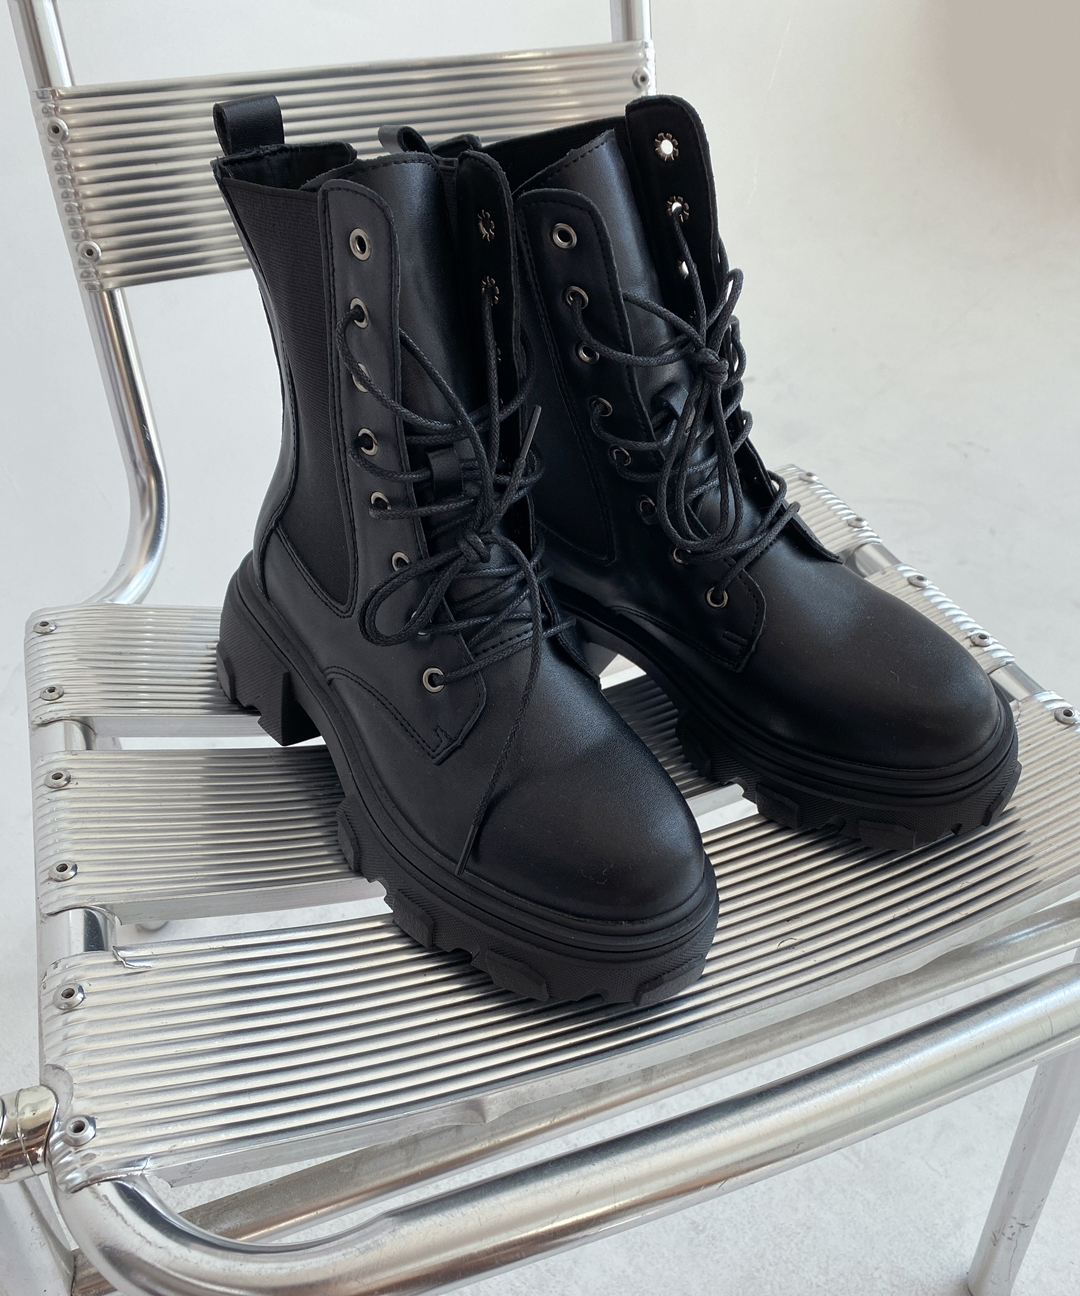 QUIETLABRound Toe Lace-Up Chunky Boots